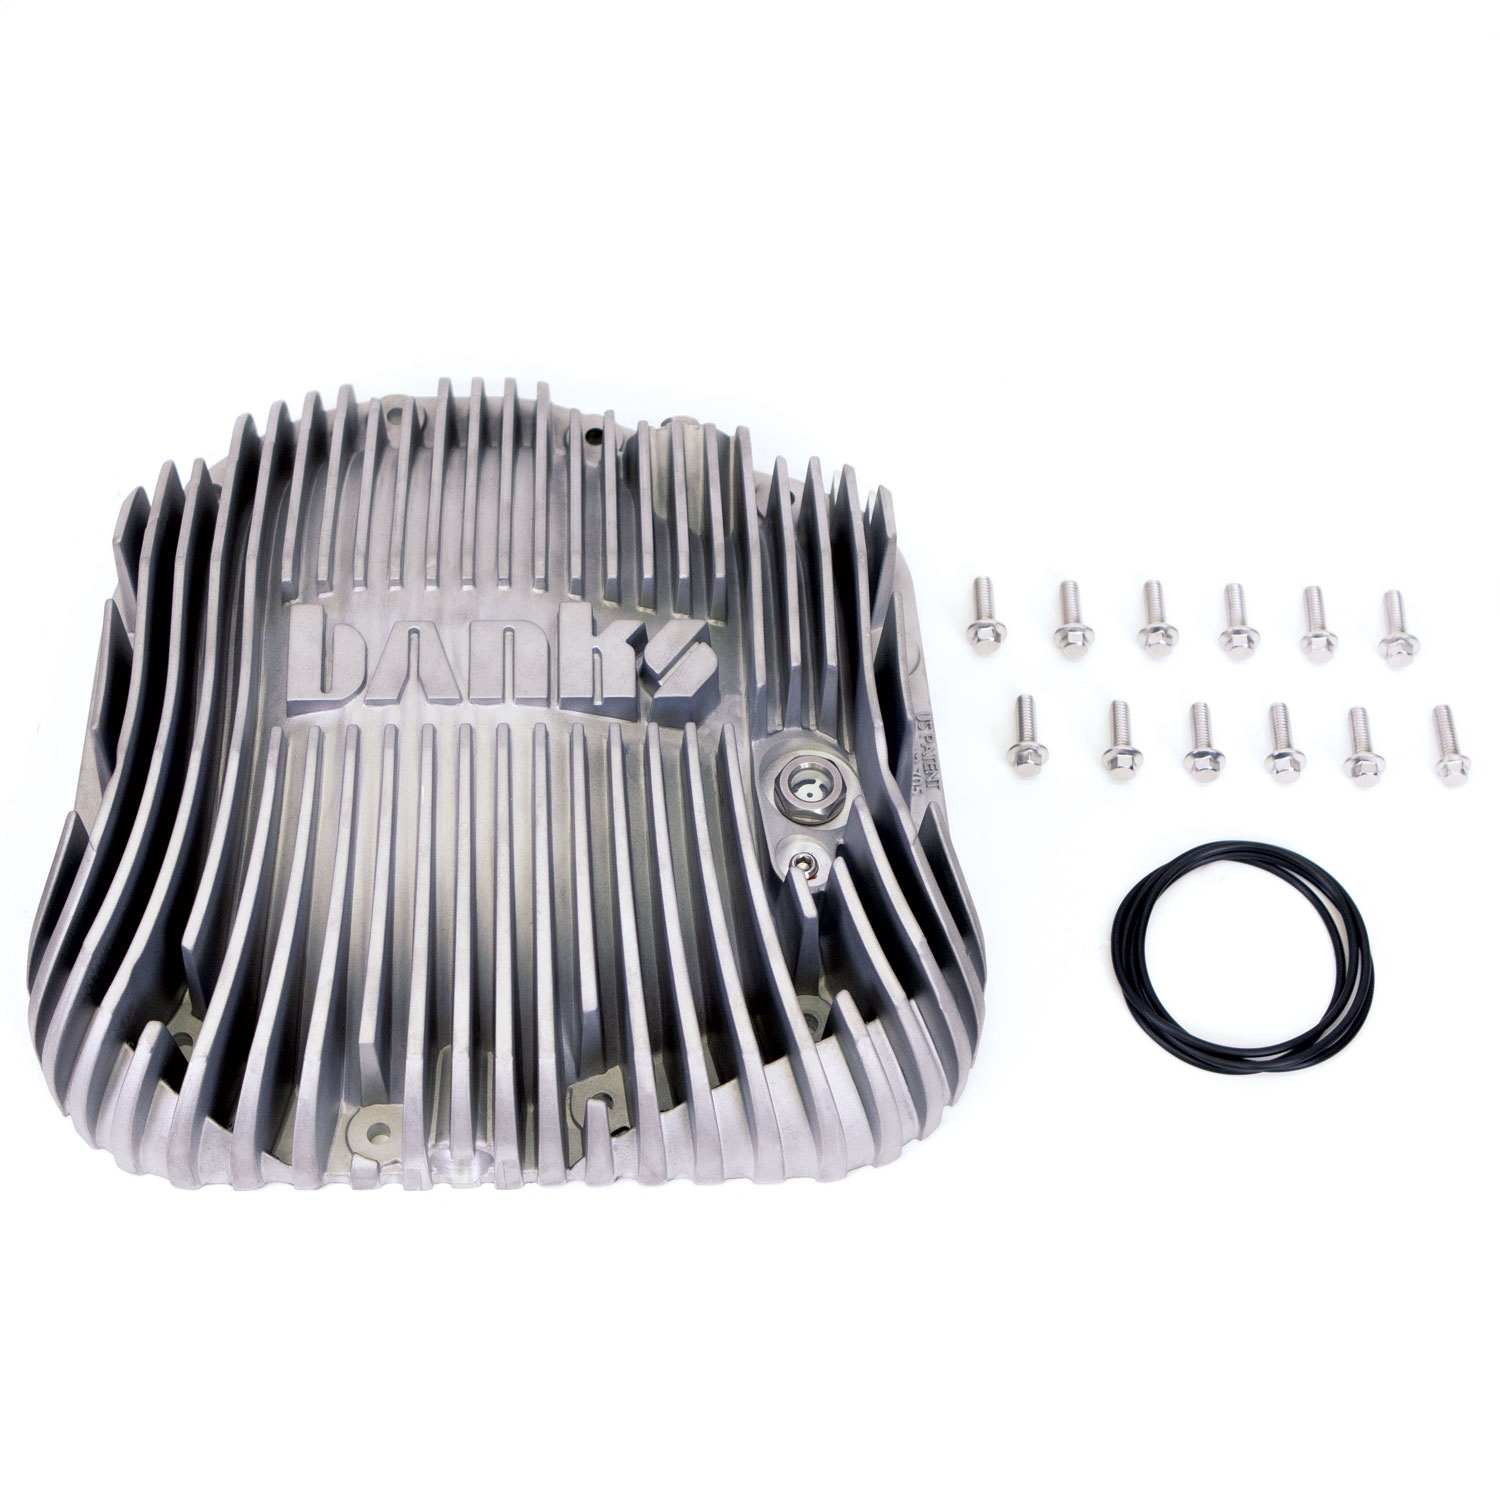 Banks Power 19262 Ram-Air Differential Cover Kit